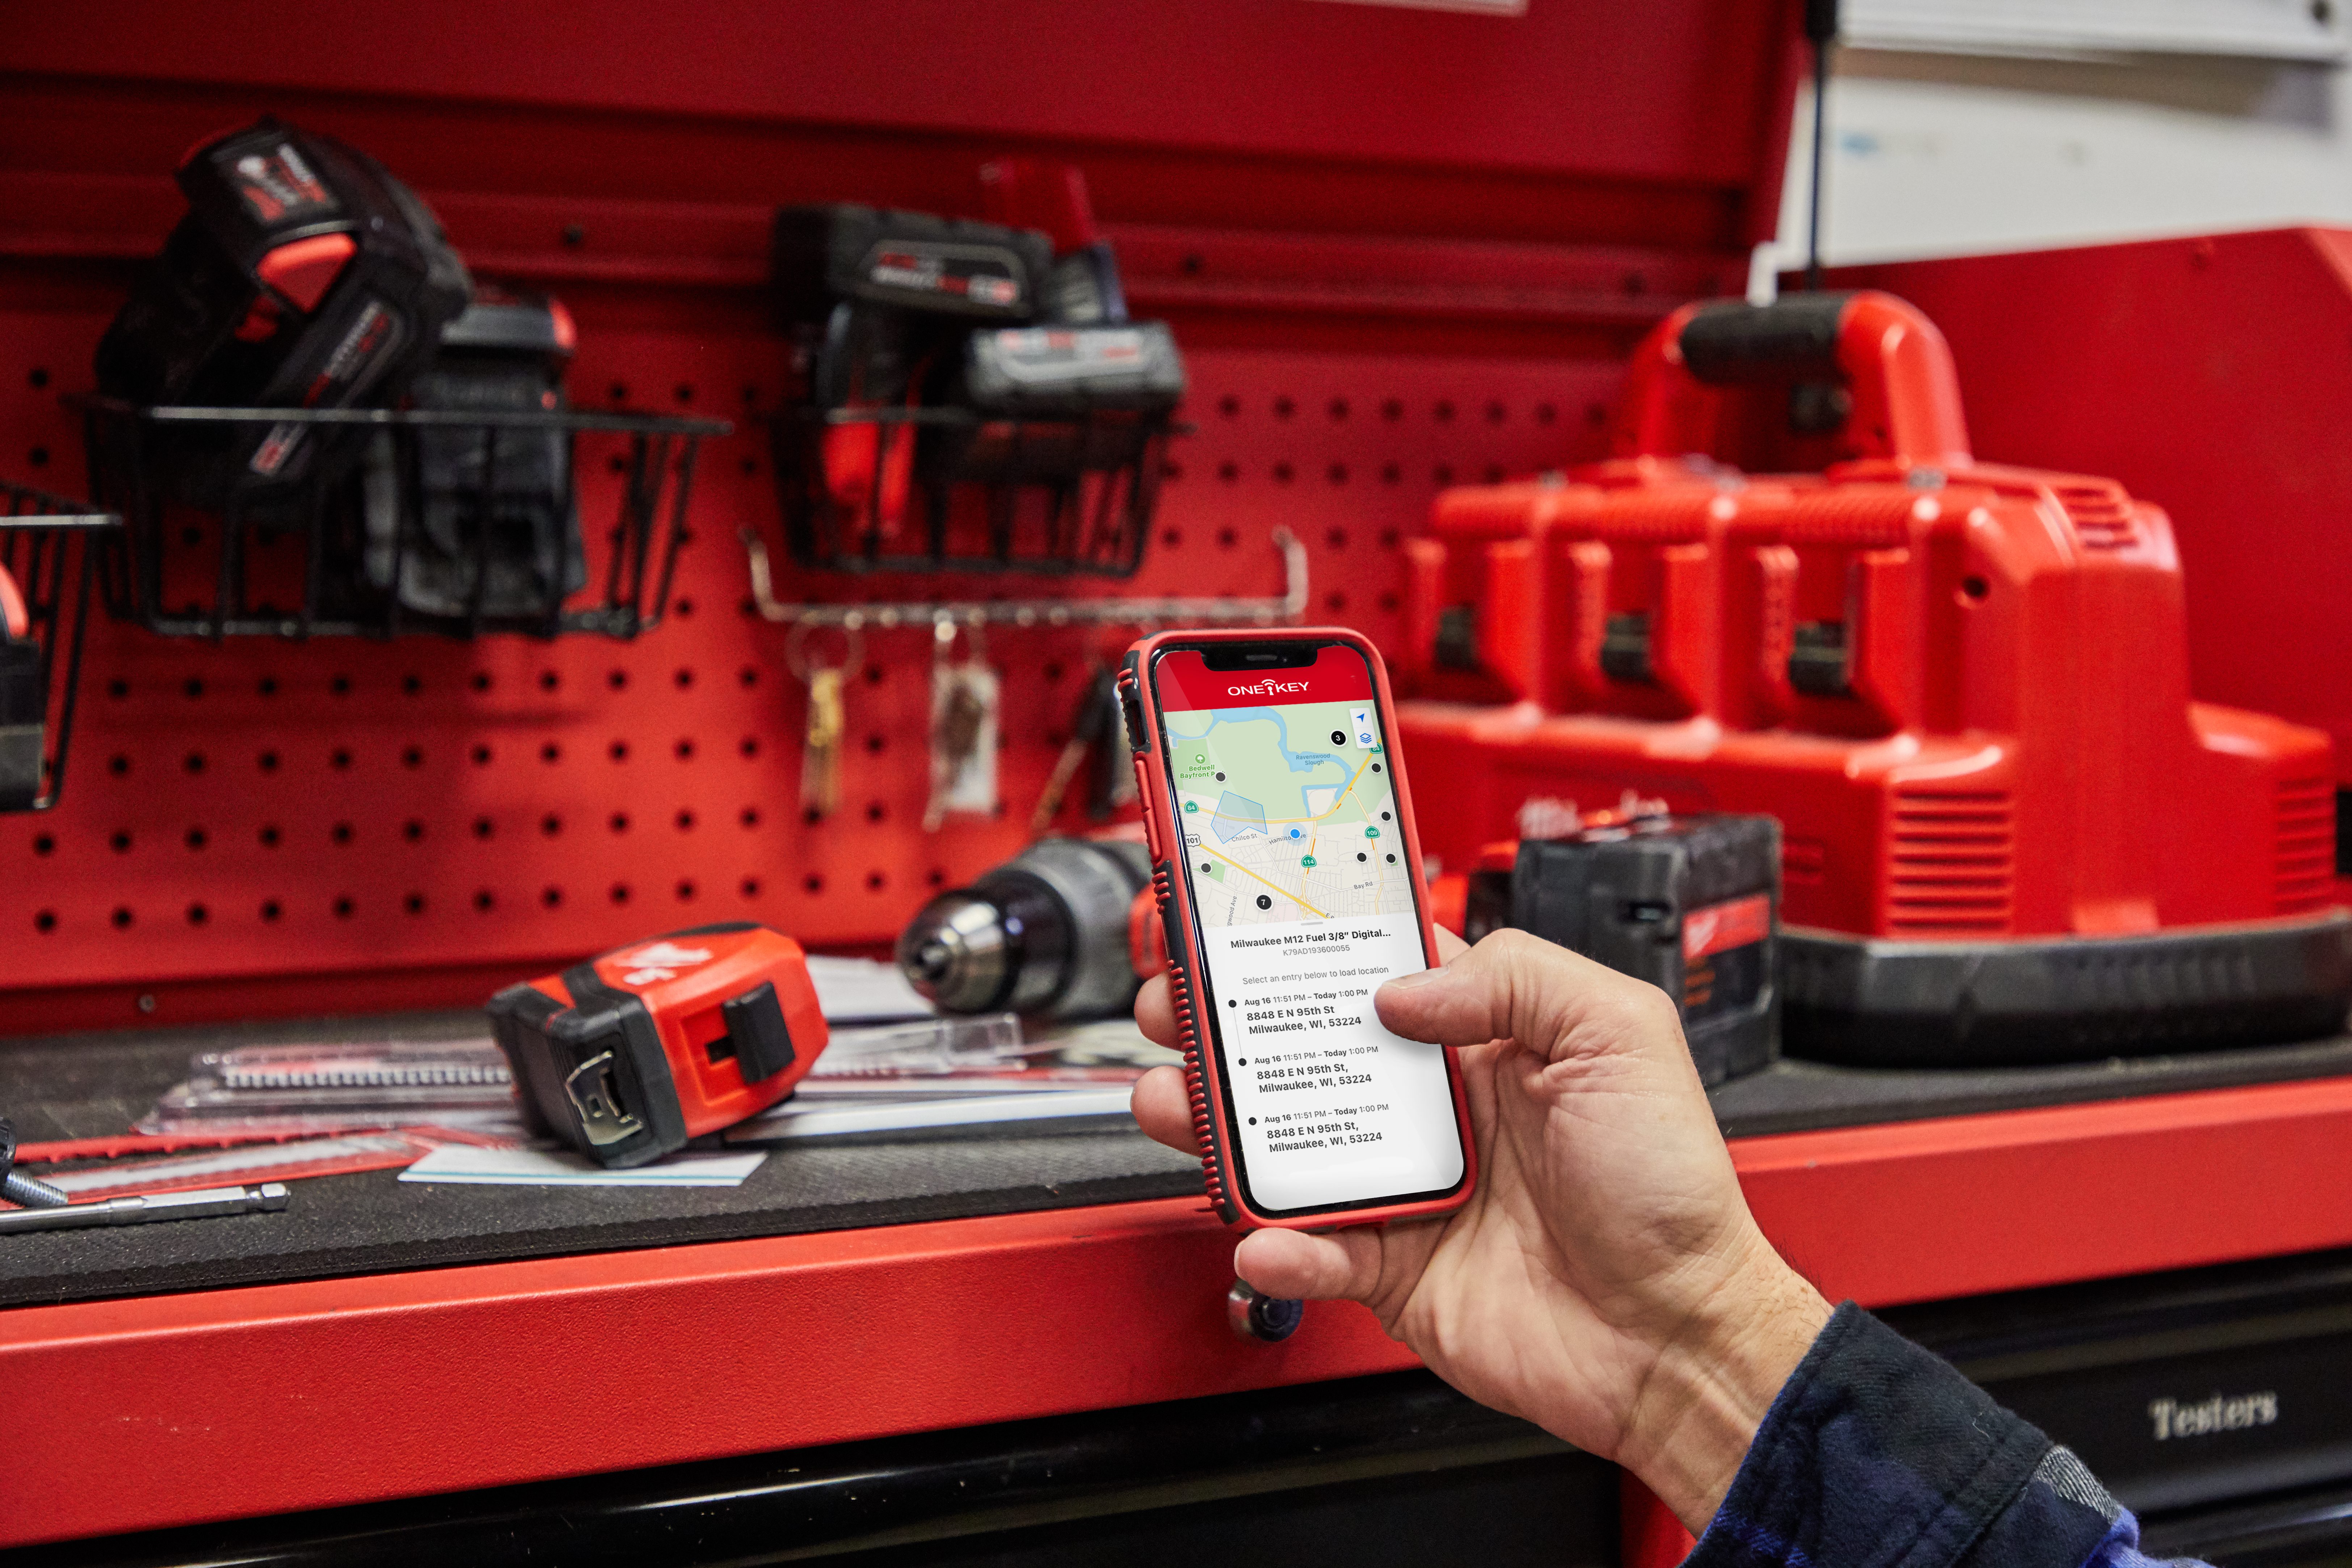 One-Key app is used in tool crib to view inventory items' recent location history